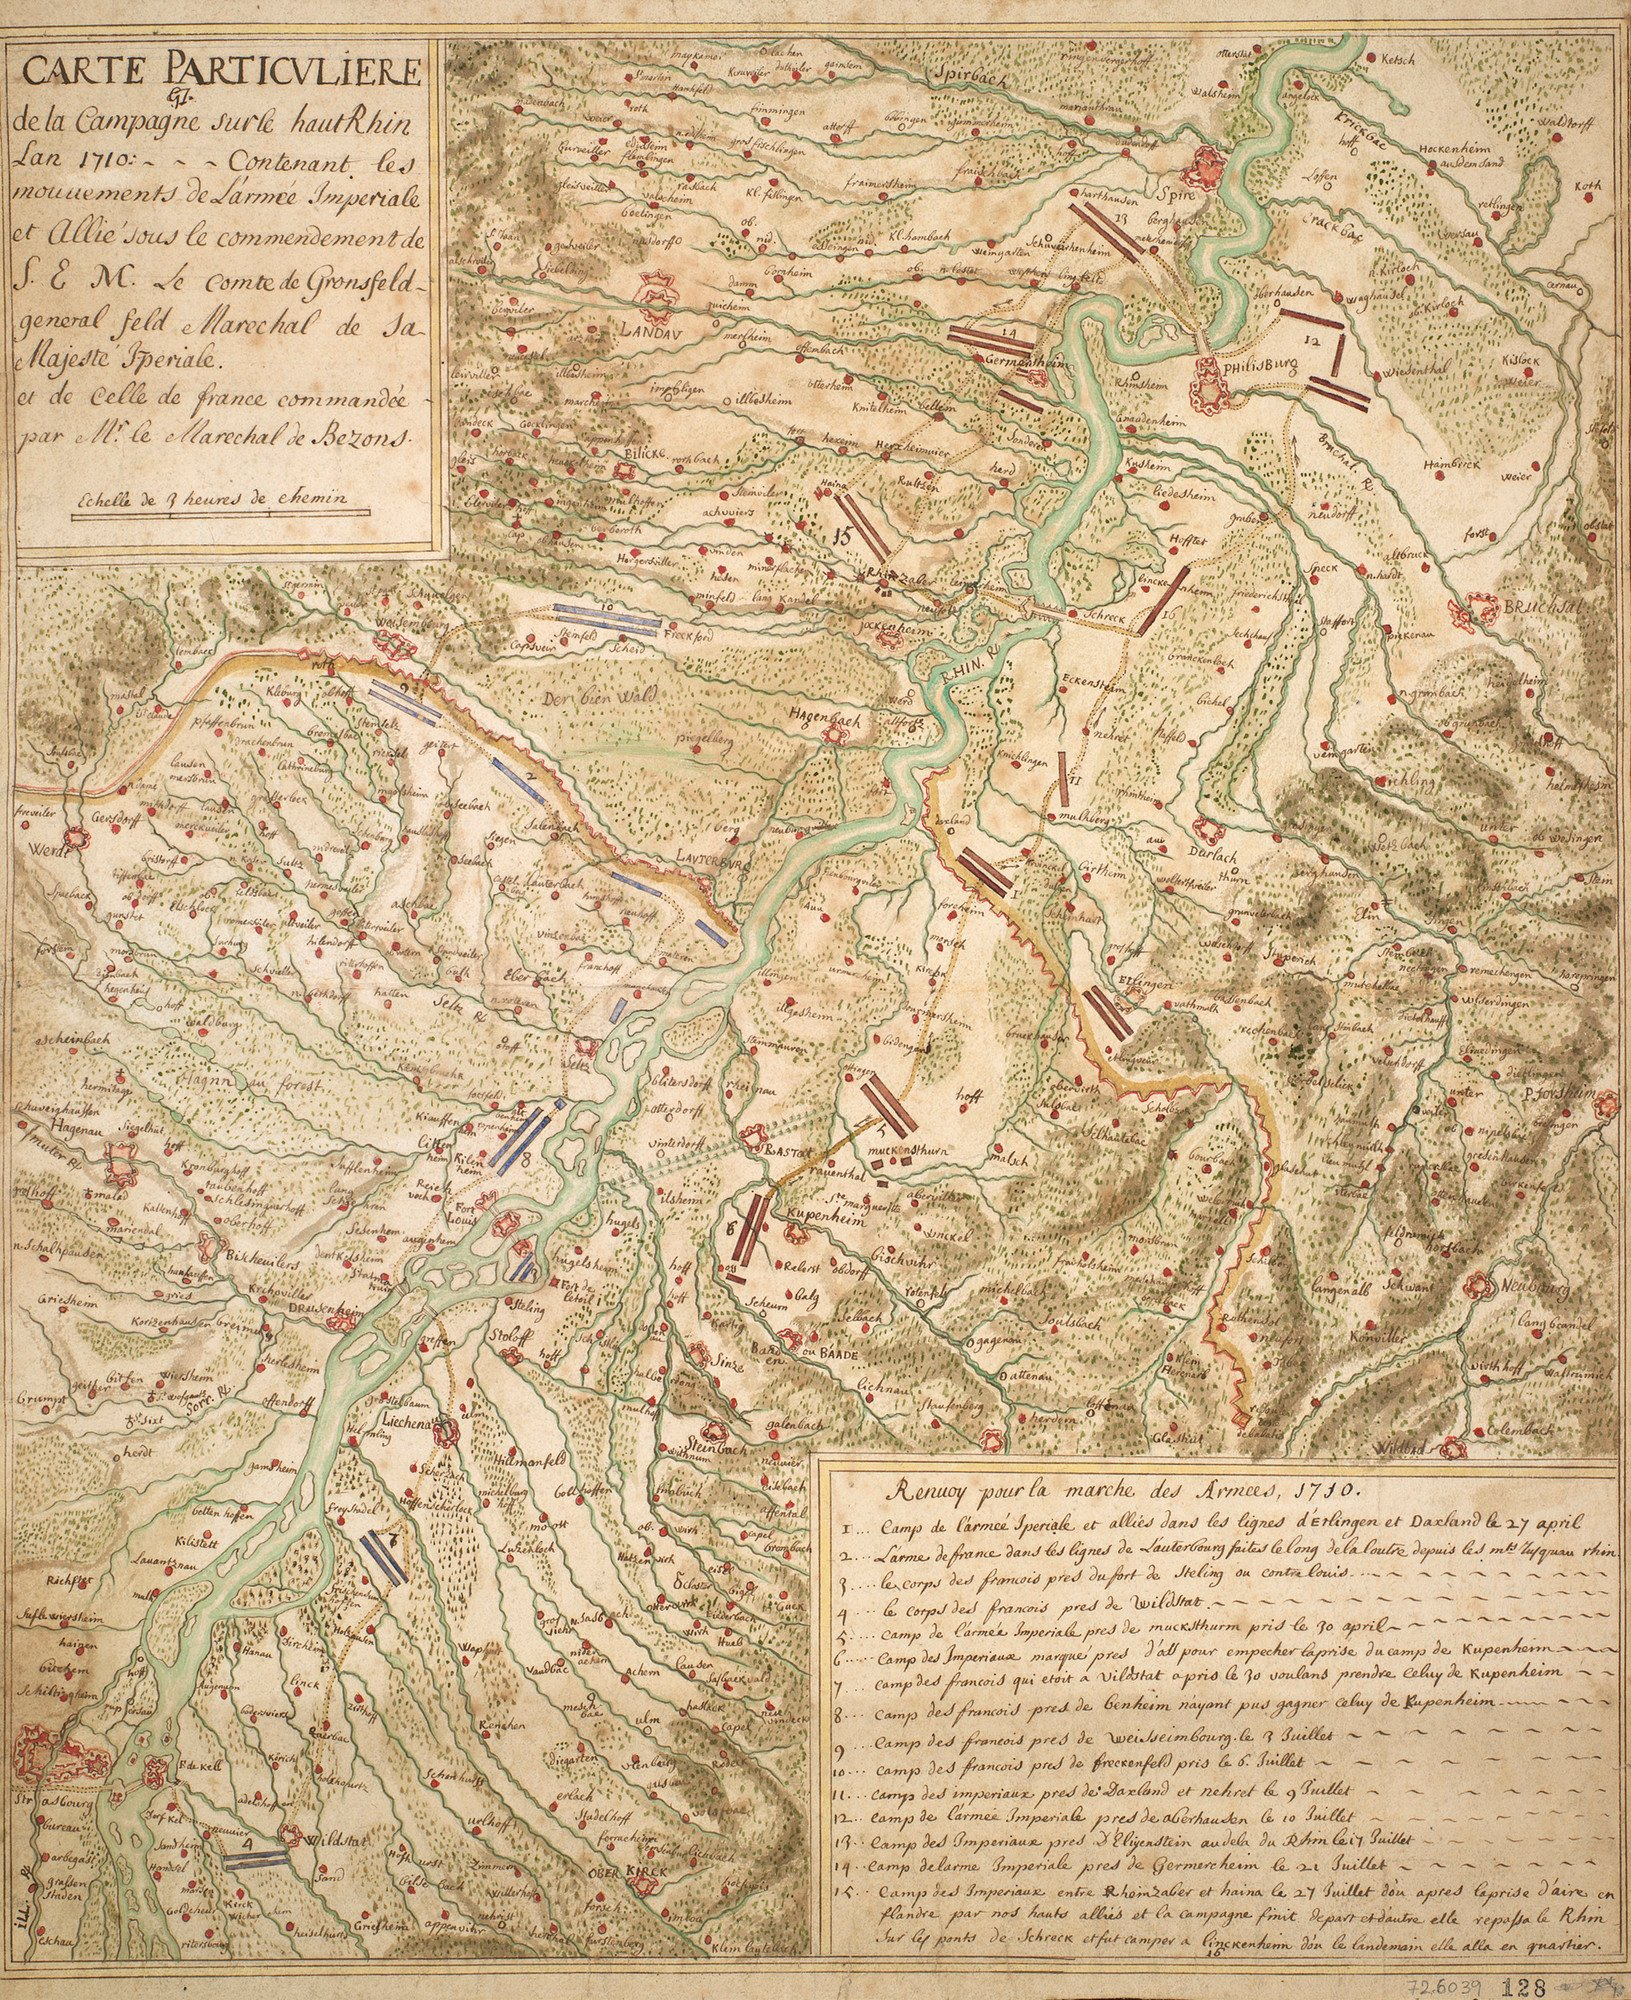 A map of the Allied and French encampments and marches along the Rhine between 27 April and 27 July 1710. War of the Spanish Succession (1701-14). Oriented with north to top.  The map covers an area extending along the Rhine from Ketsch (49°22'04